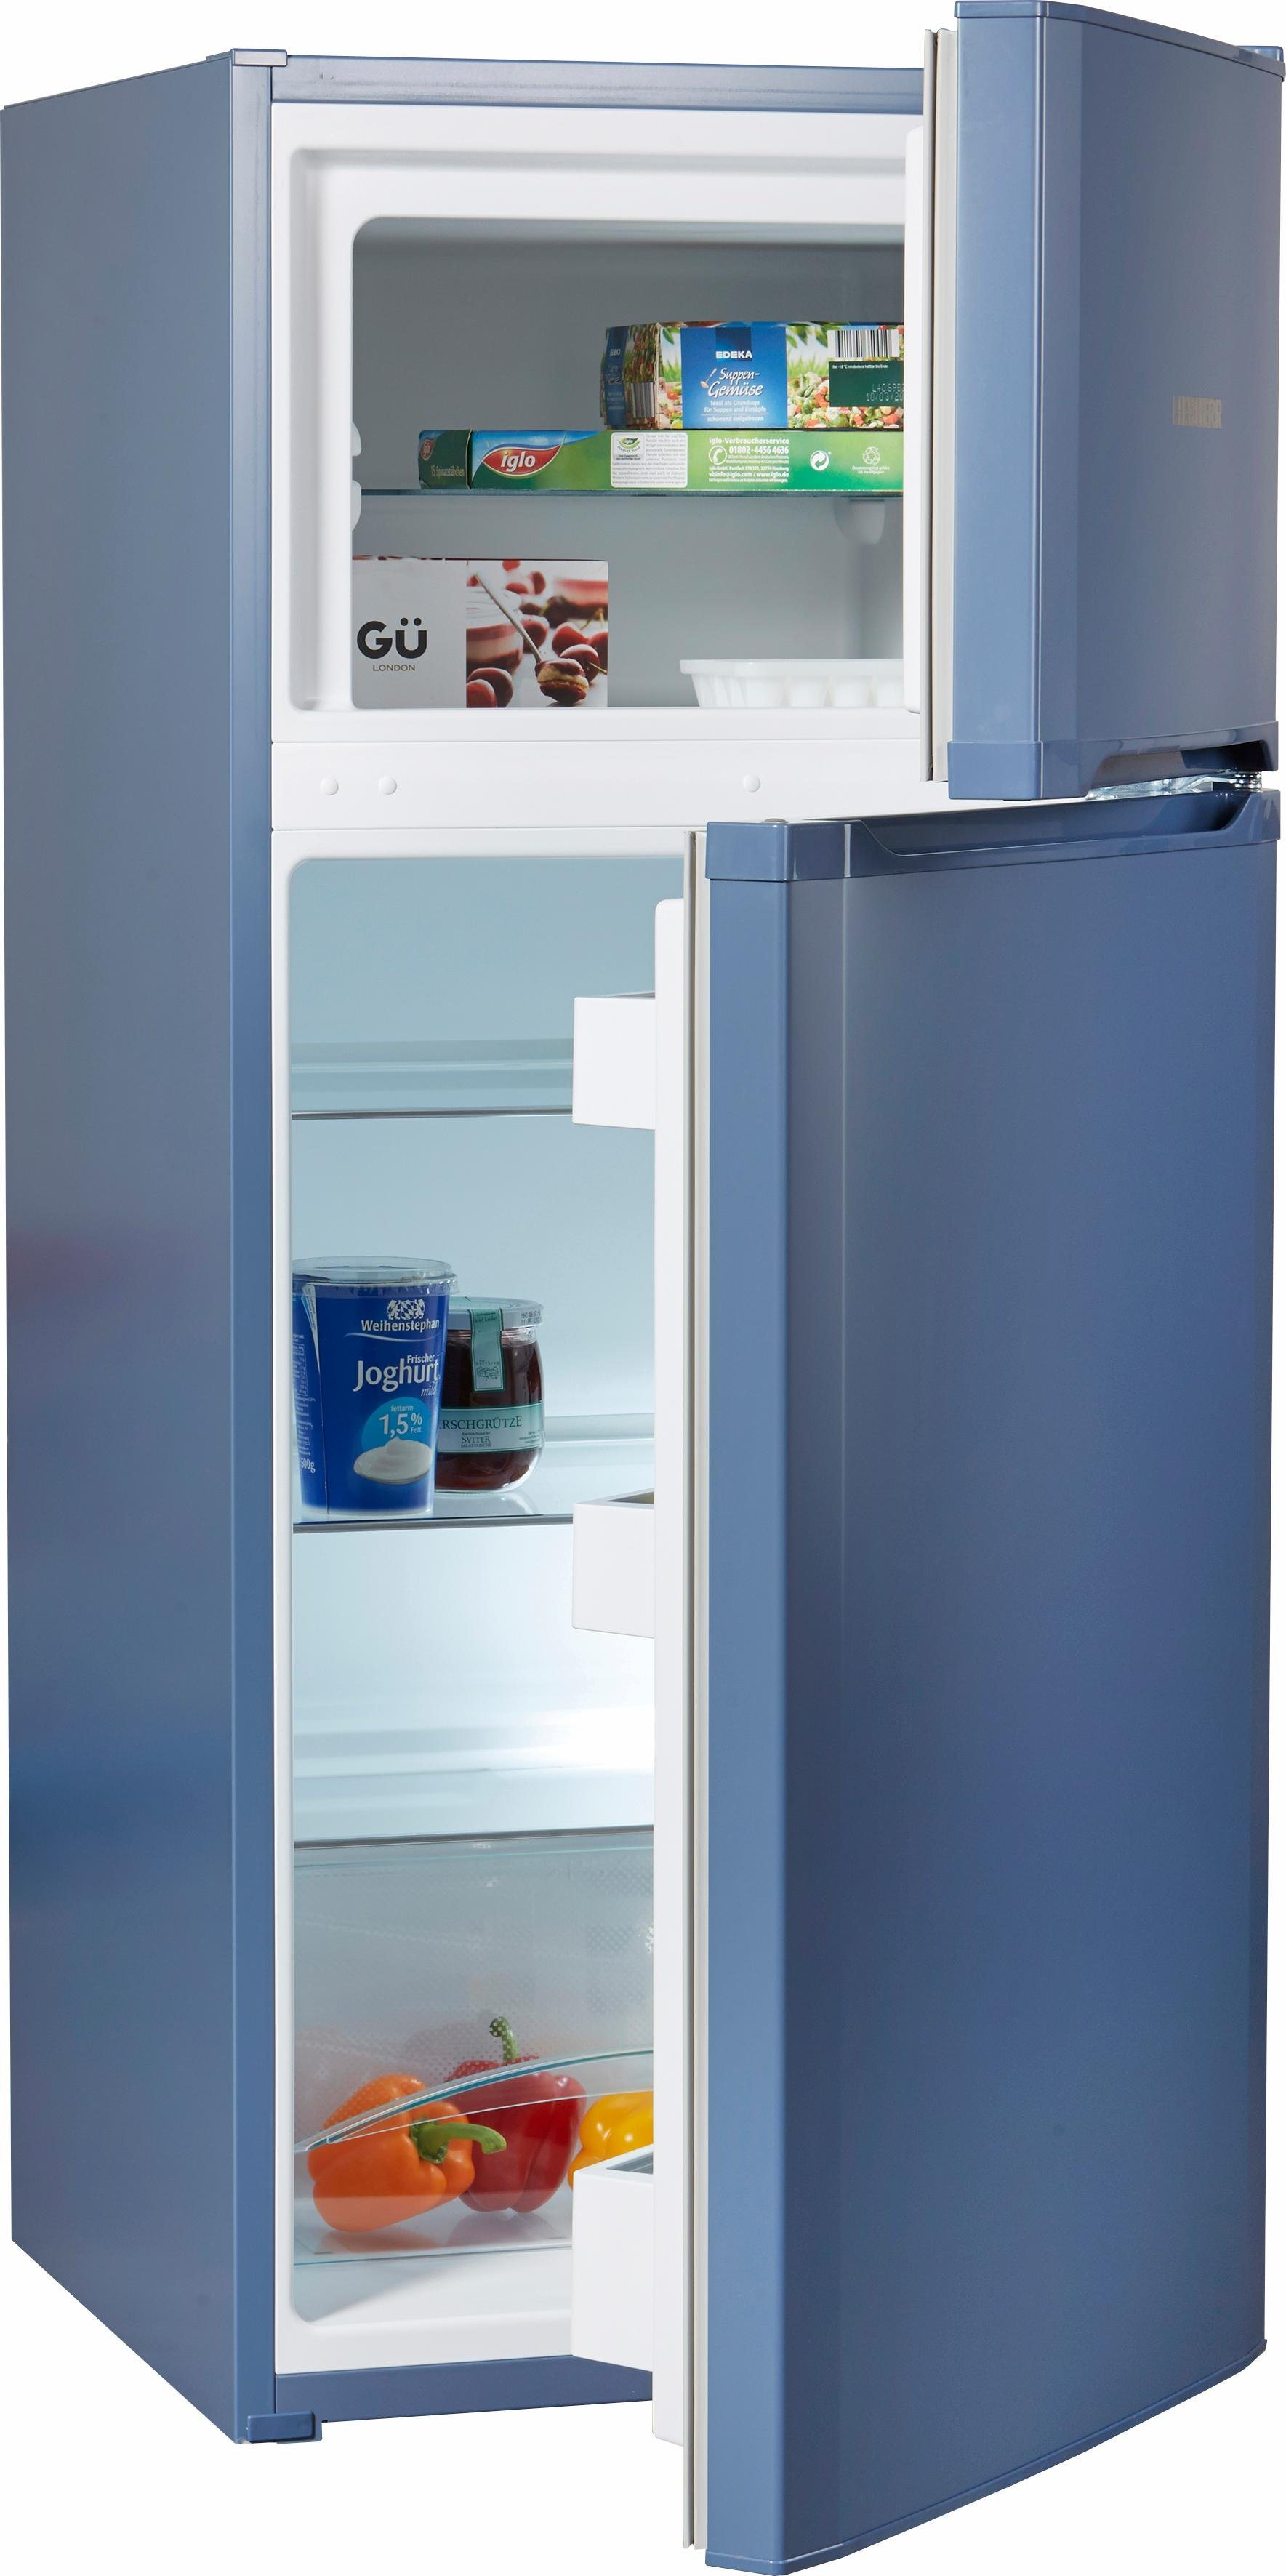 liebherr topfreezer k hlschrank ctp 2121 comfort 124 1 cm hoch 55 cm breit. Black Bedroom Furniture Sets. Home Design Ideas